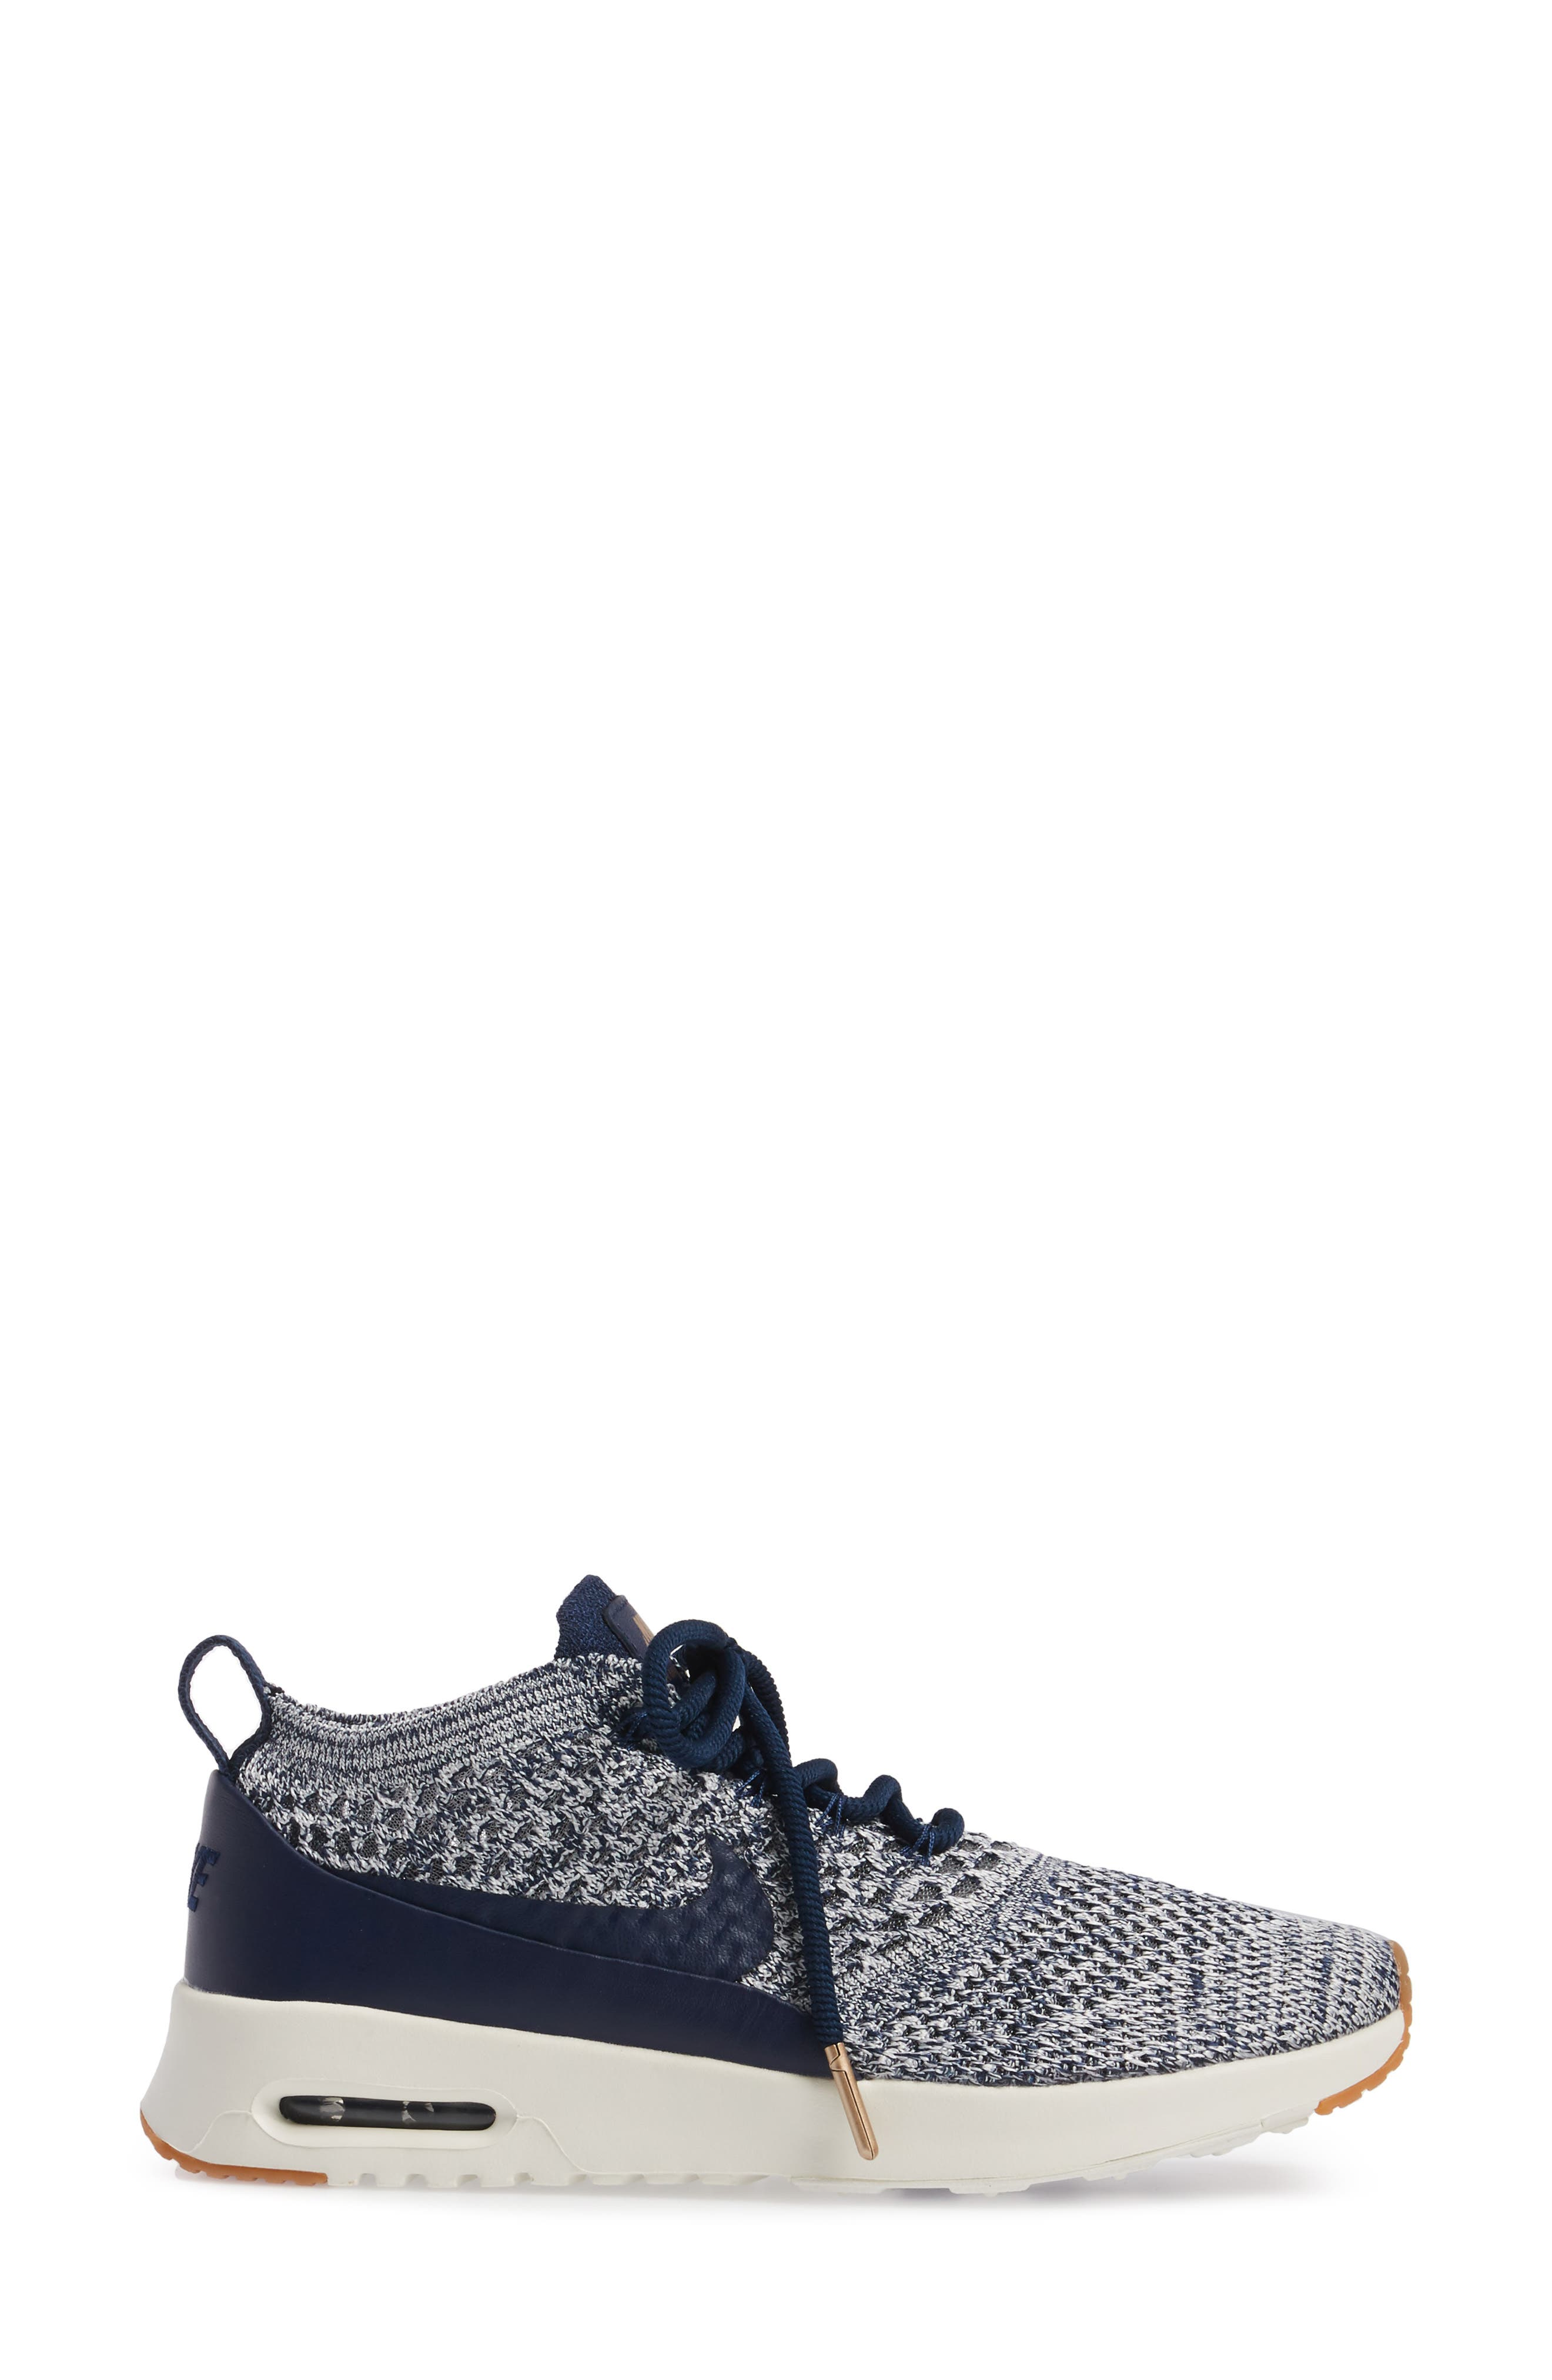 Air Max Thea Ultra Flyknit Sneaker,                             Alternate thumbnail 33, color,